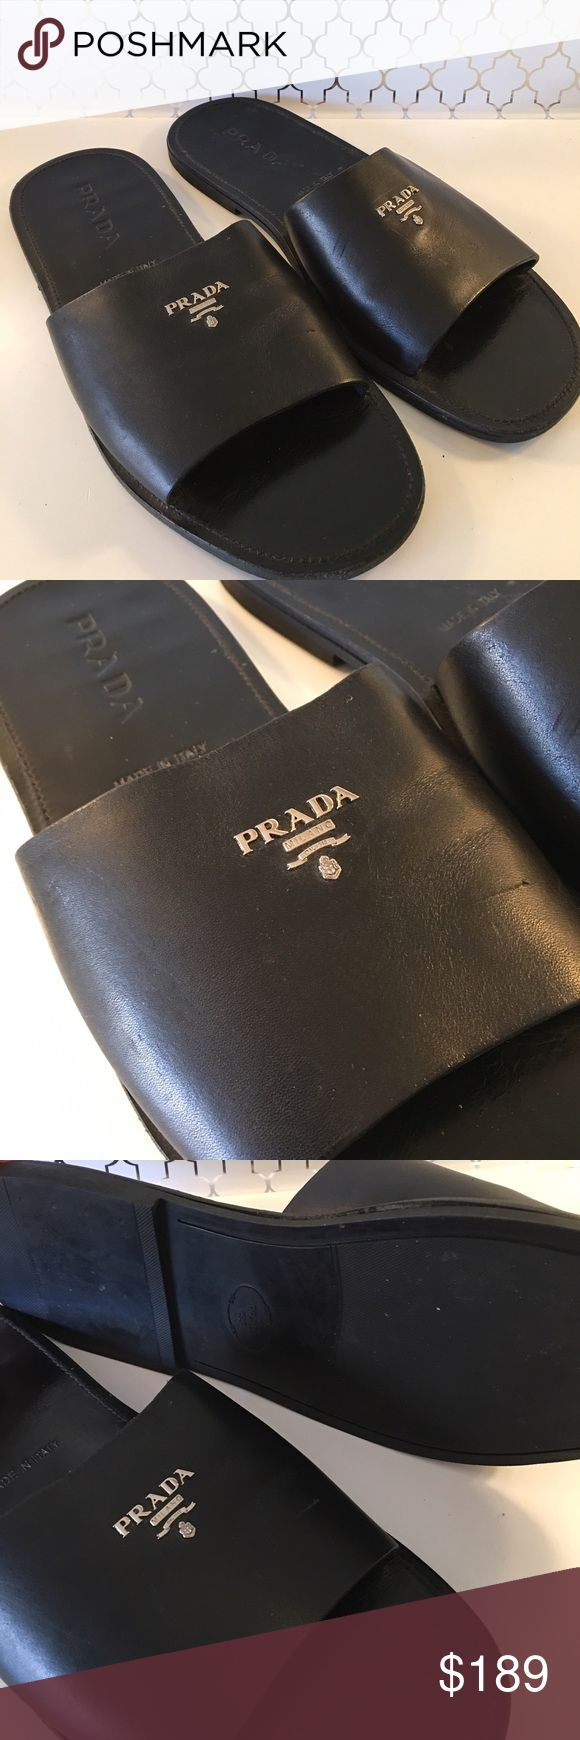 🎁SALE! PRADA MENS SANDALS 💯 AUTHENTIC PRADA MENS SANDALS 100% AUTHENTIC. TRUE HIGH END ITALIAN STYLE IN THESE PRADA SANDALS. USED BUT GOOD CONDITION. THEY ARE A SIZE 9 Prada Shoes Sandals & Flip-Flops